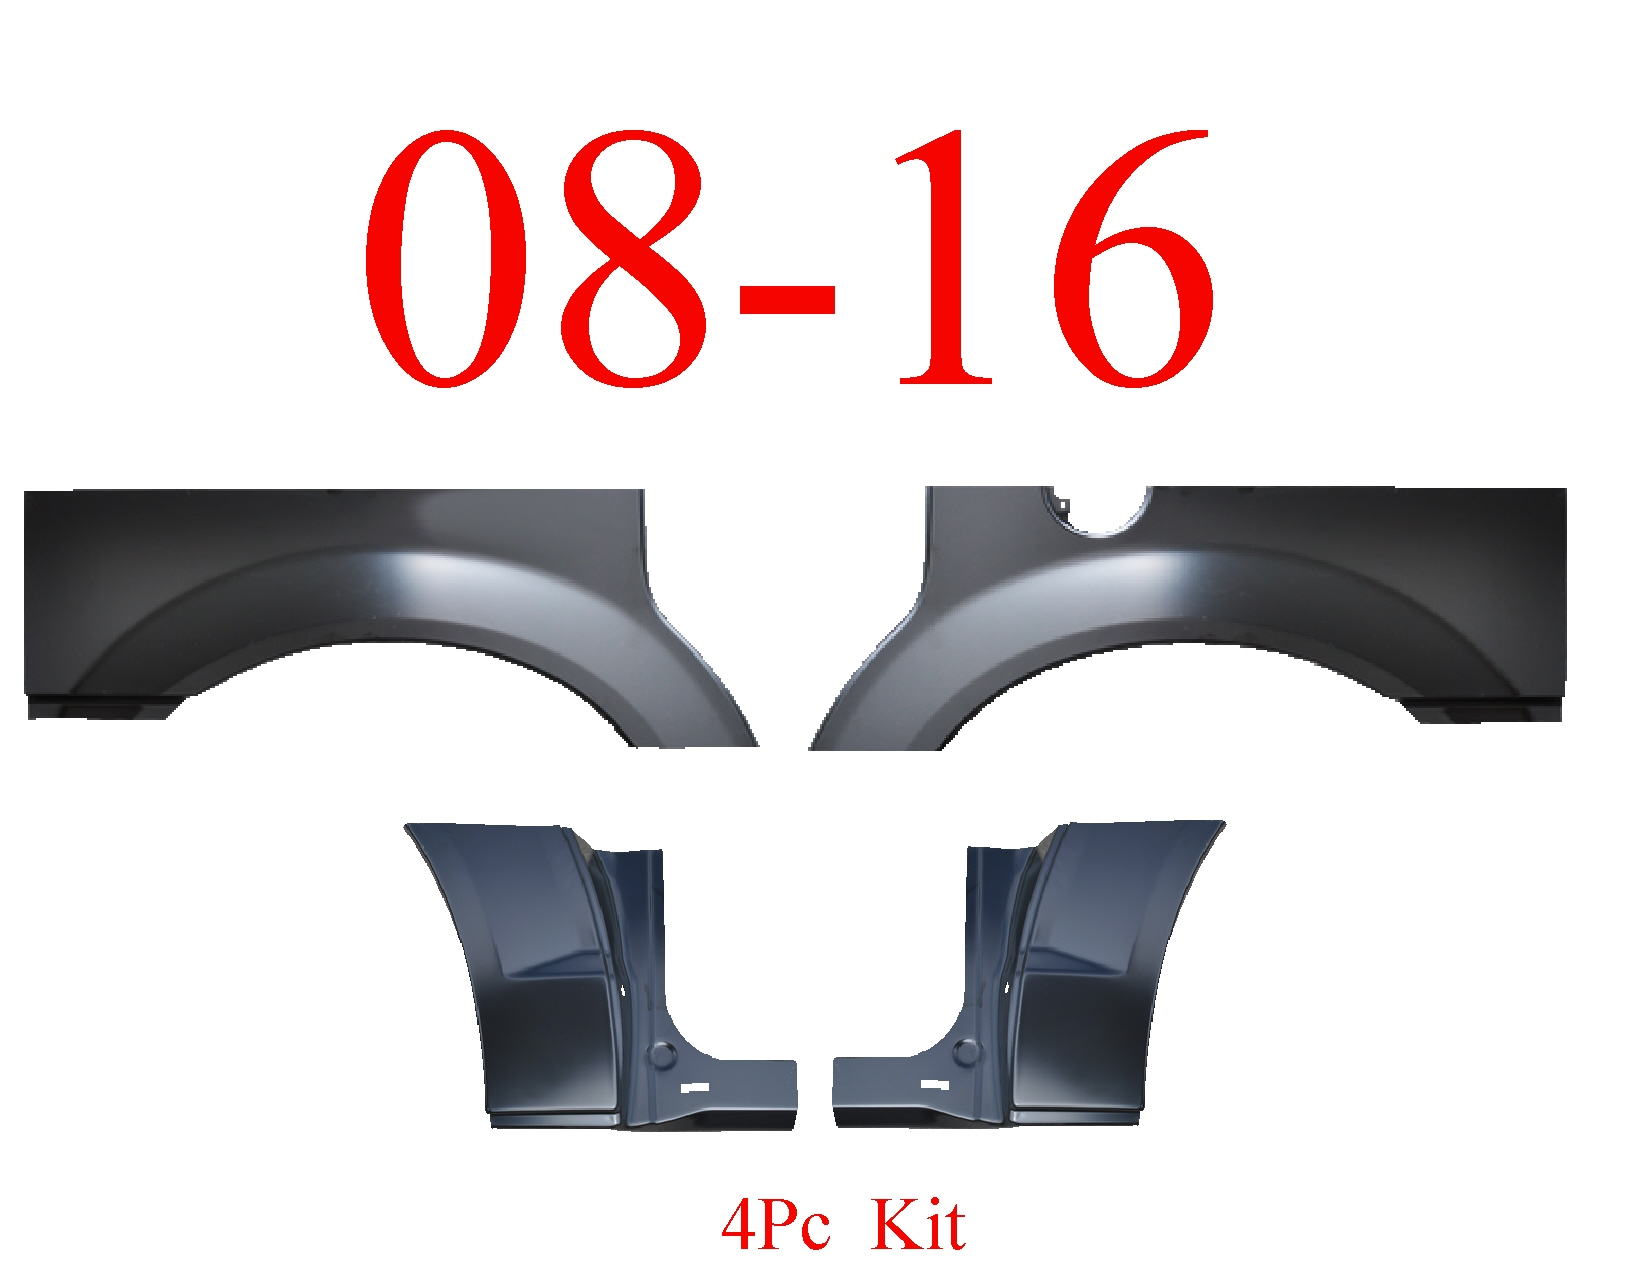 08-16 Grand Caravan 4Pc Upper Arch & Dog Leg Kit